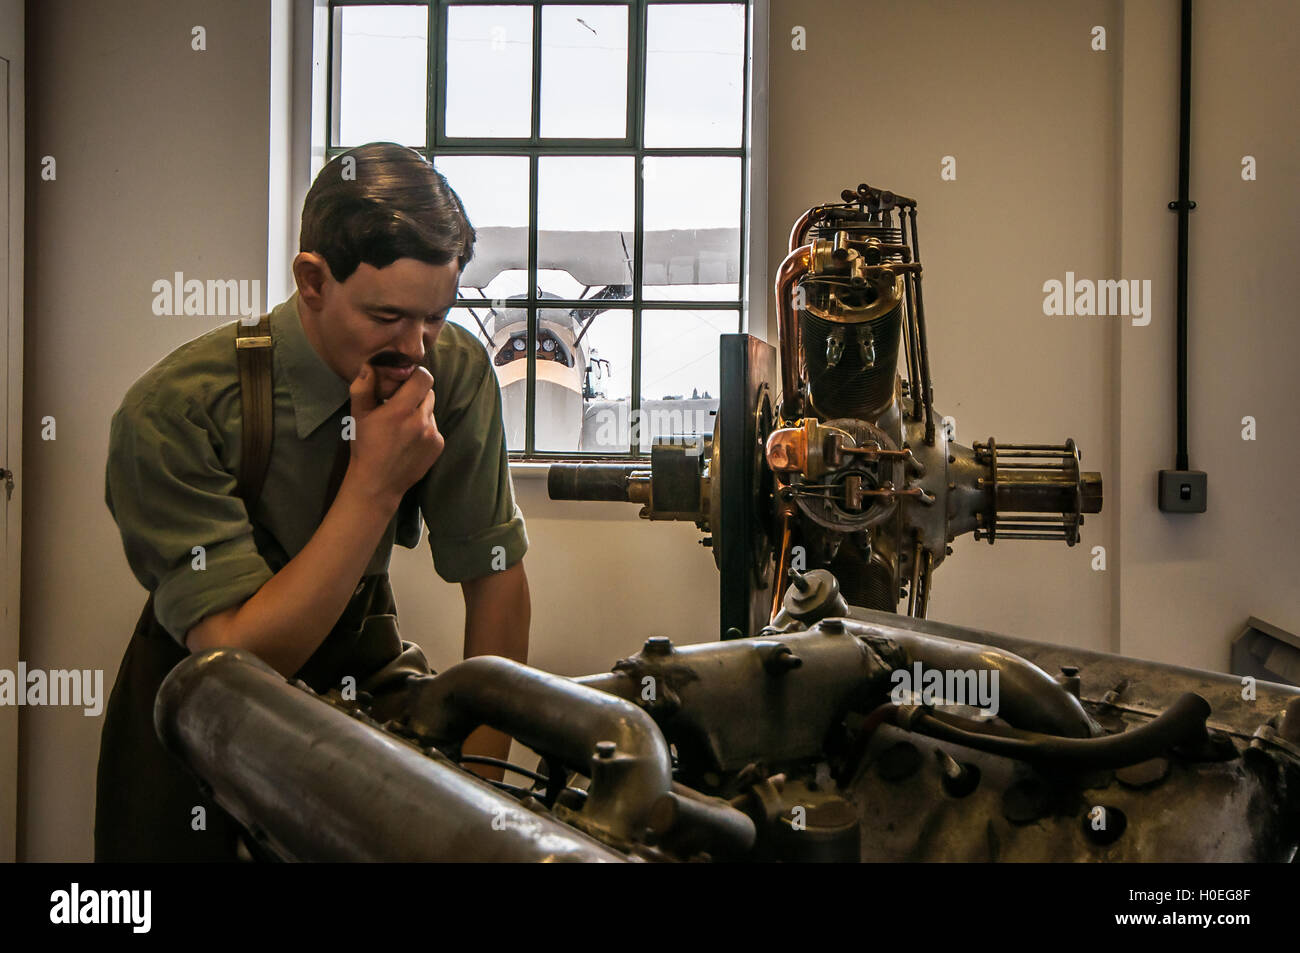 The Museum at the Stow Maries World War One Aerodrome in Essex, UK. An engineer mannequin studies an aircraft engine - Stock Image